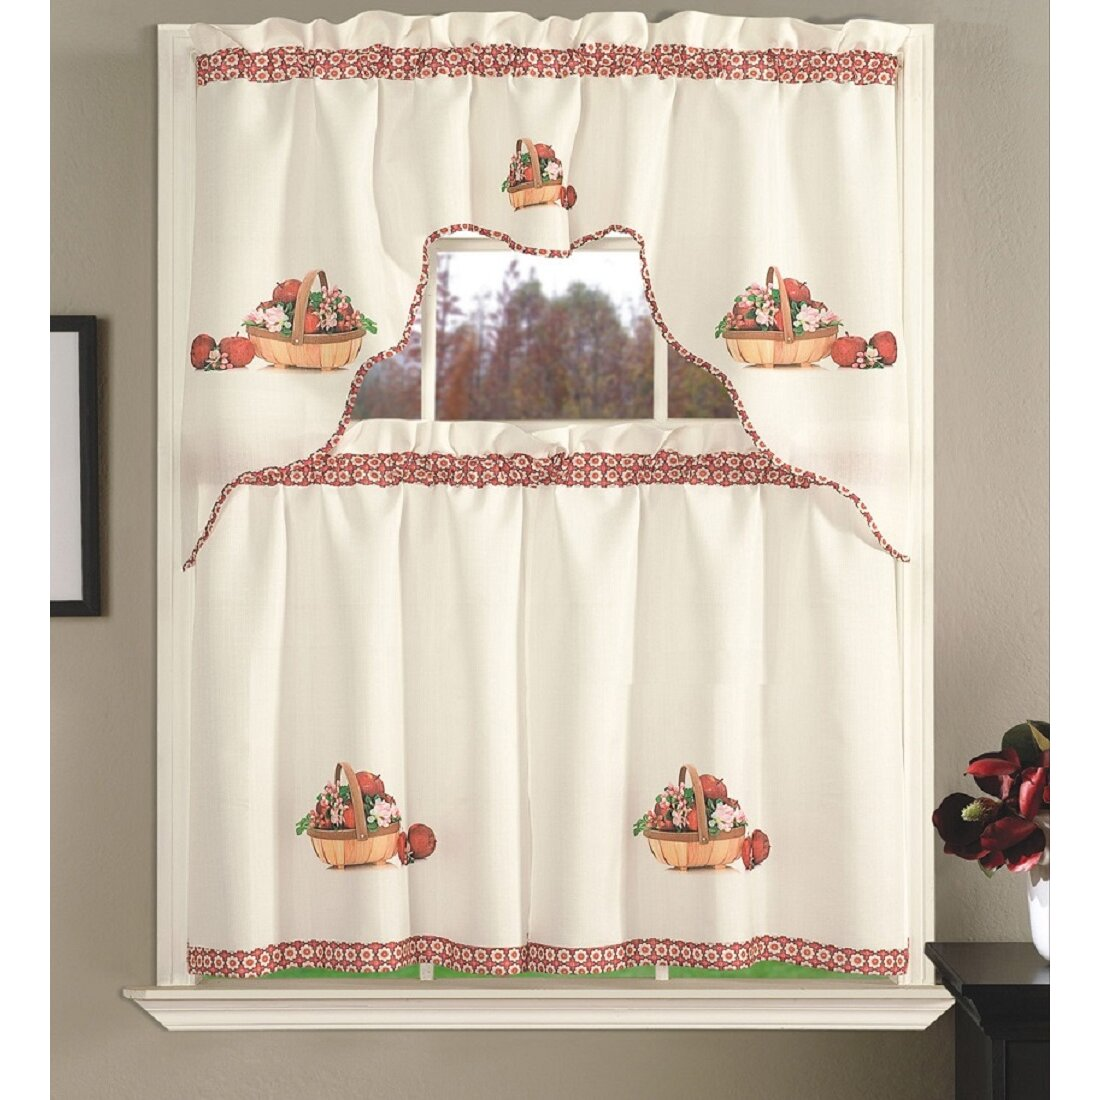 Apple Kitchen Decor Cheap: Daniels Bath Apple Blossom Kitchen Curtain Set